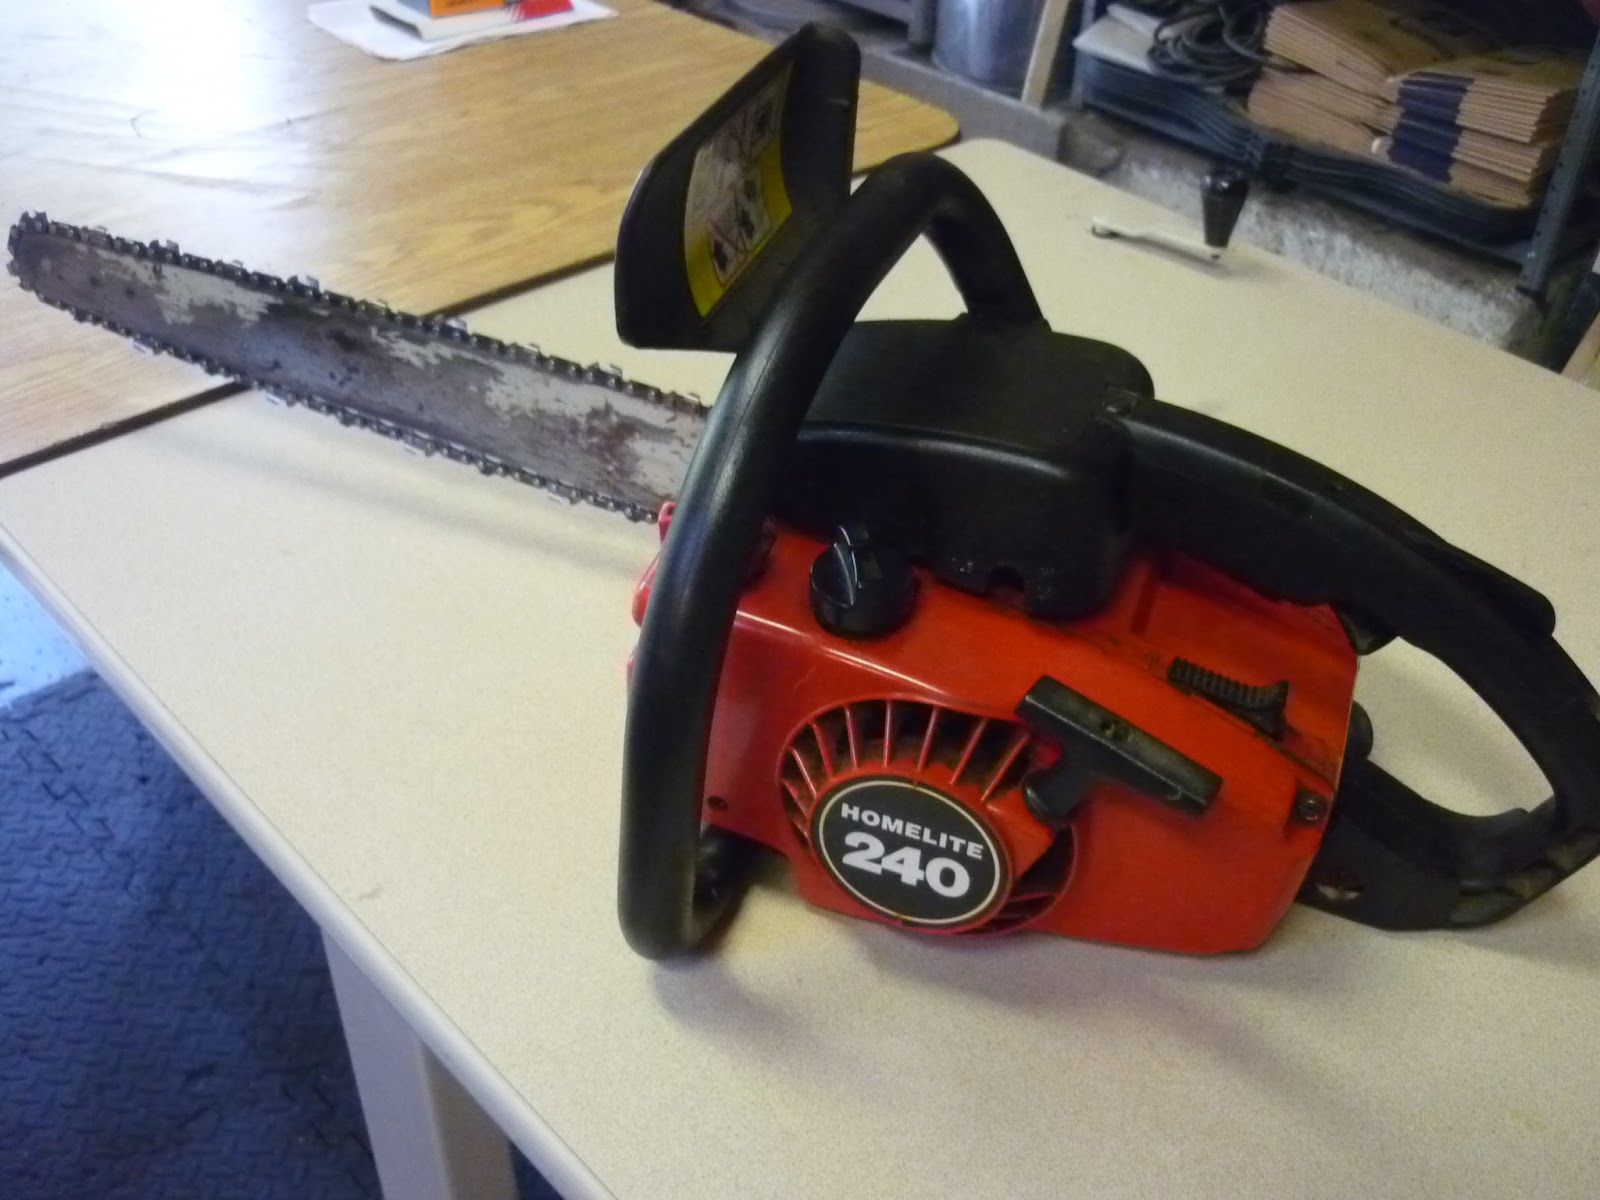 Vintage Chainsaw Collection Homelite 240